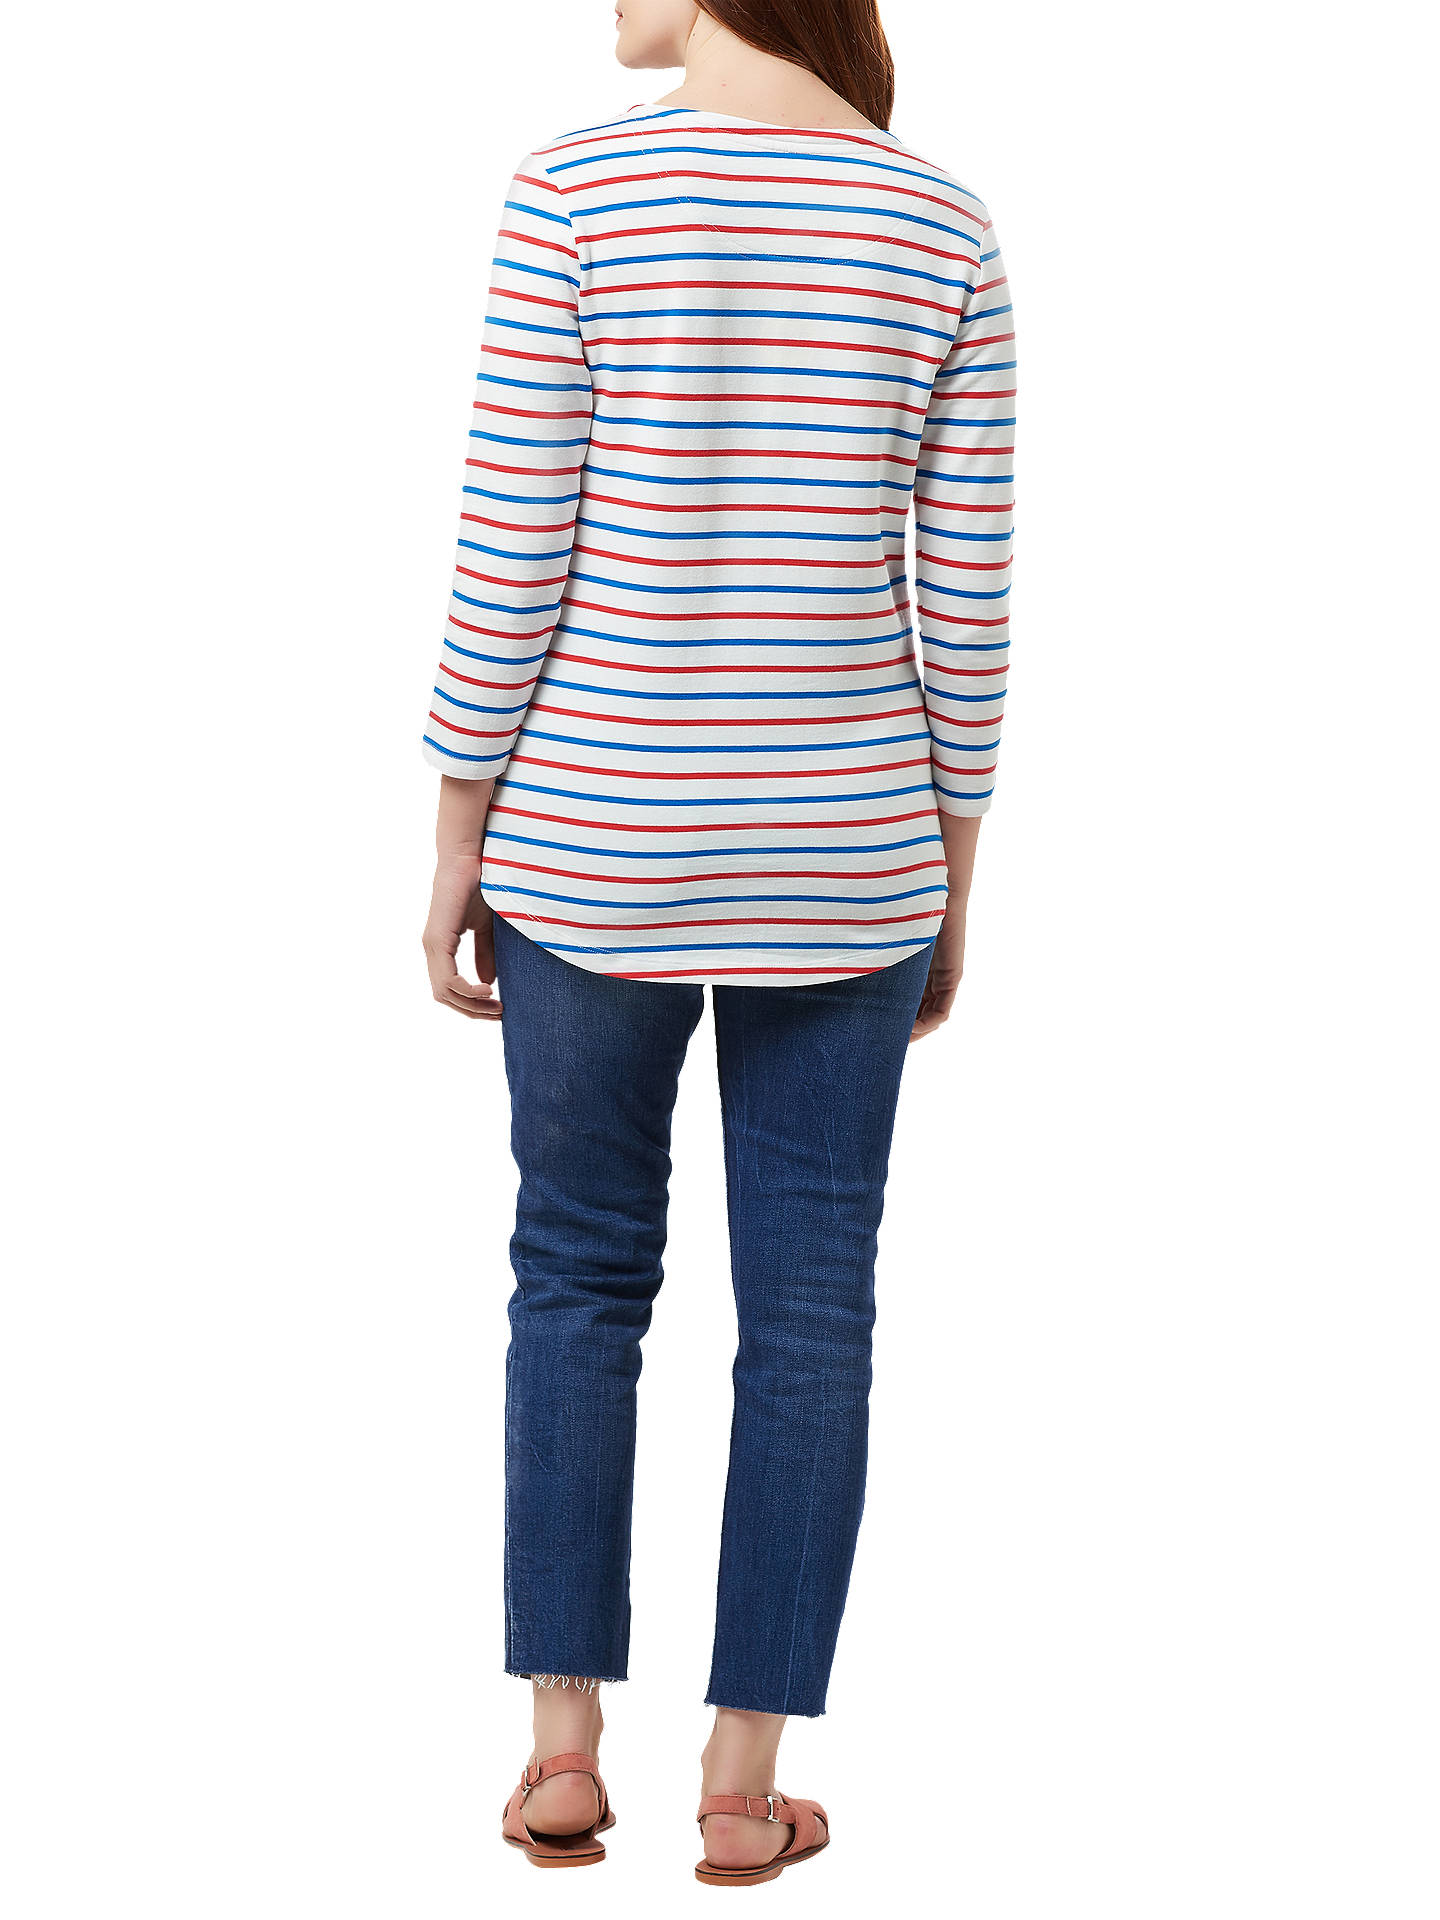 Buy Sugarhill Brighton Brighton Flamingo Embroidered Top, Cream/Red/Blue, 8 Online at johnlewis.com